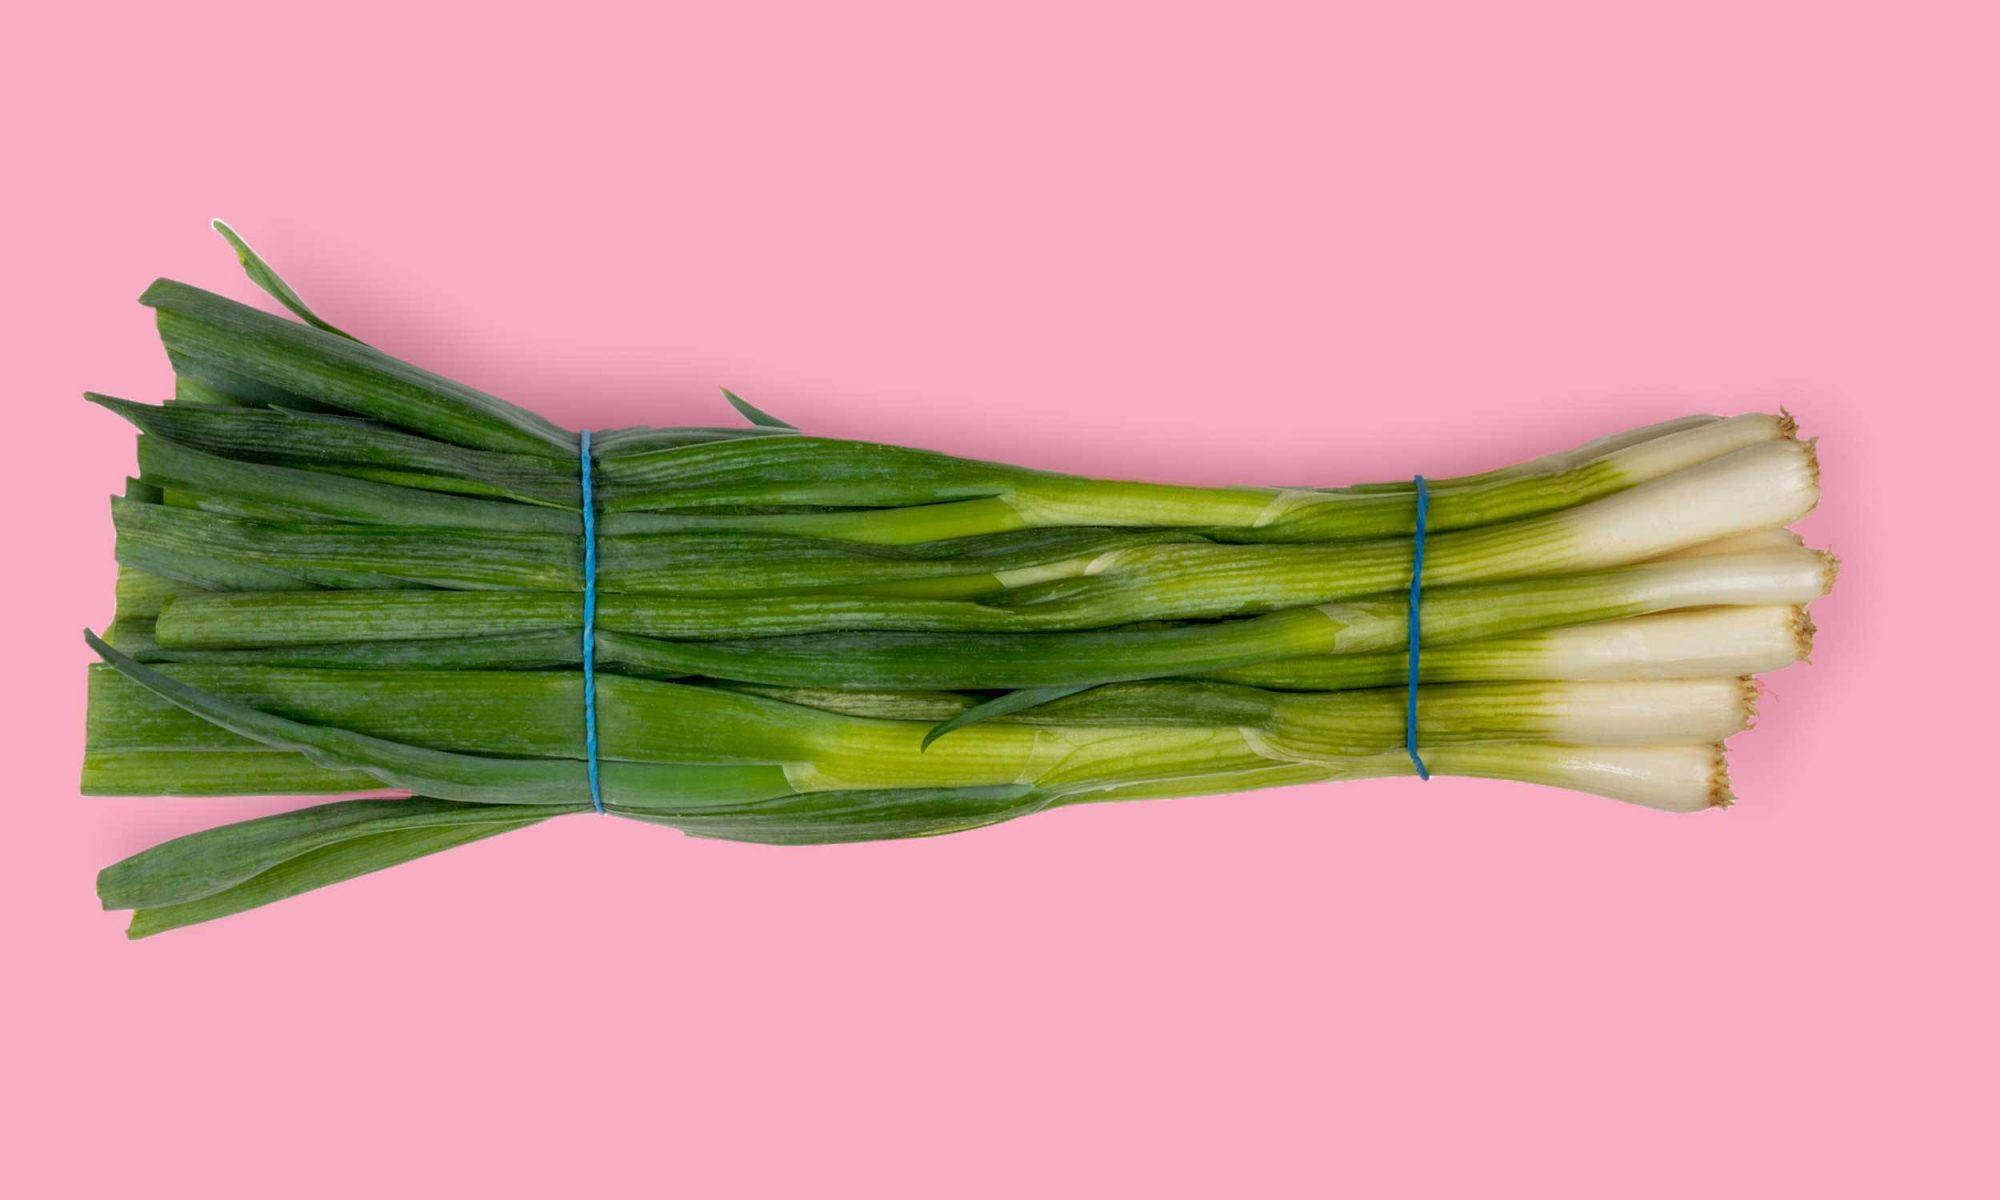 EC: How to Store Scallions So They Don't Wilt